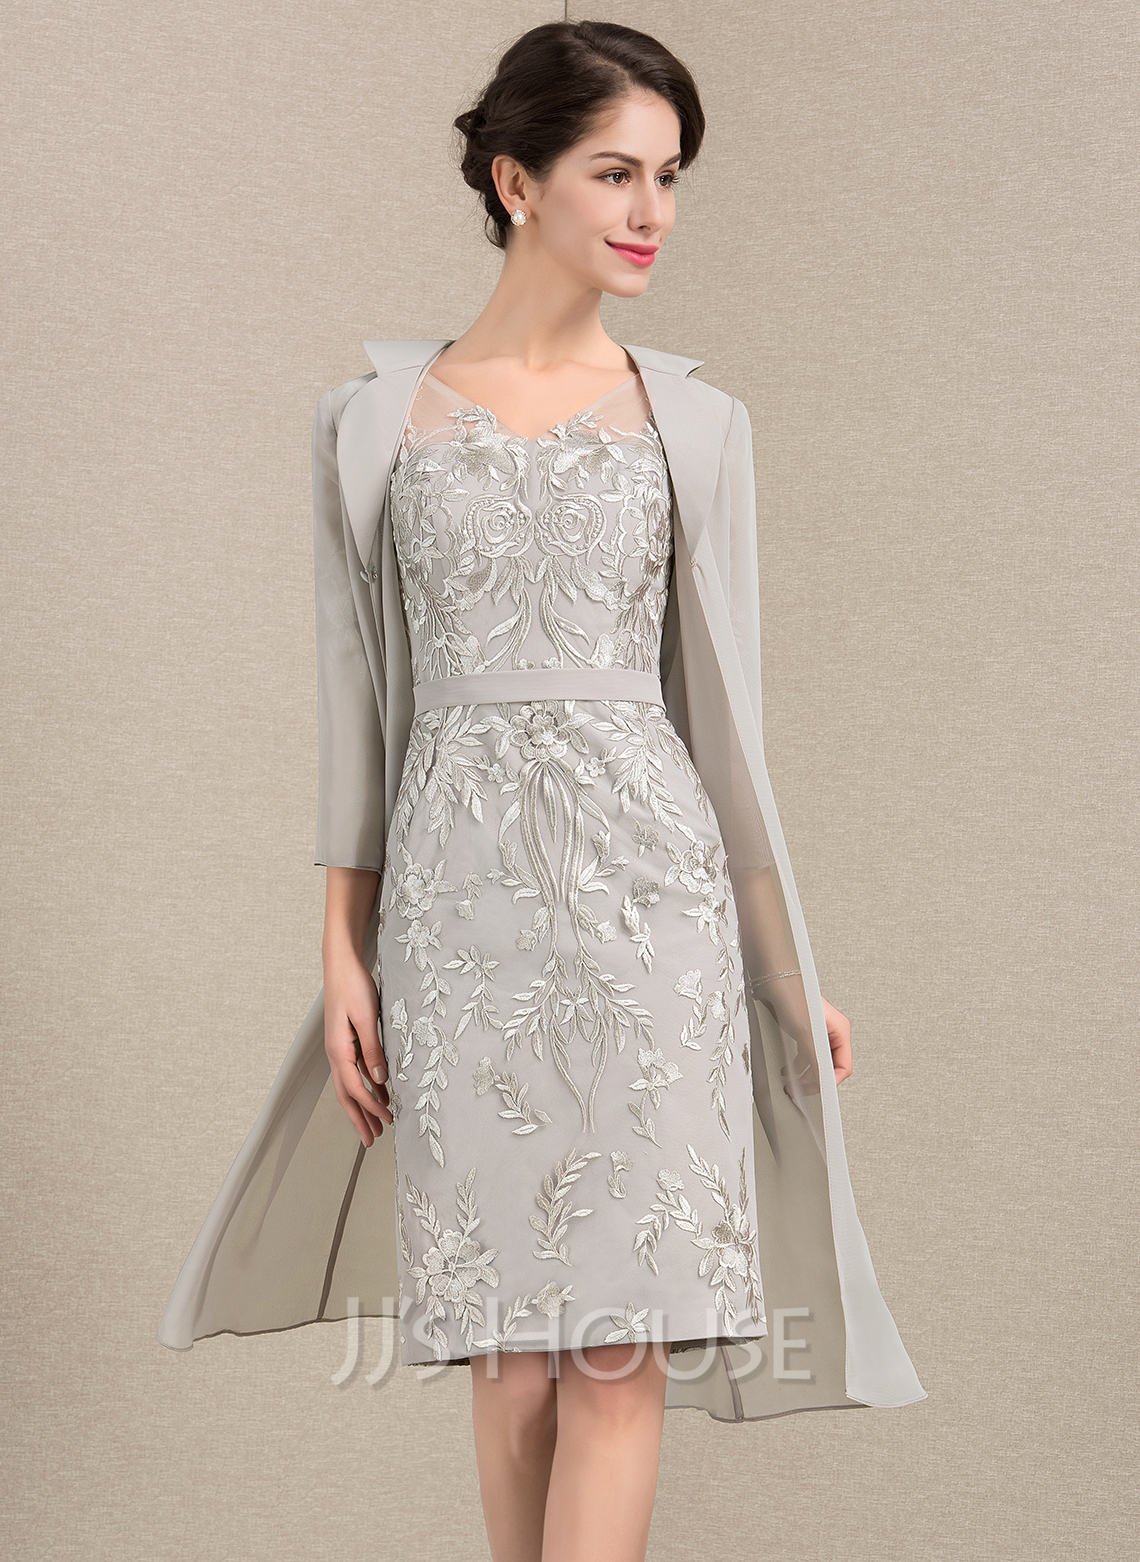 714368d4d Sheath/Column V-neck Knee-Length Lace Mother of the Bride Dress. Loading  zoom